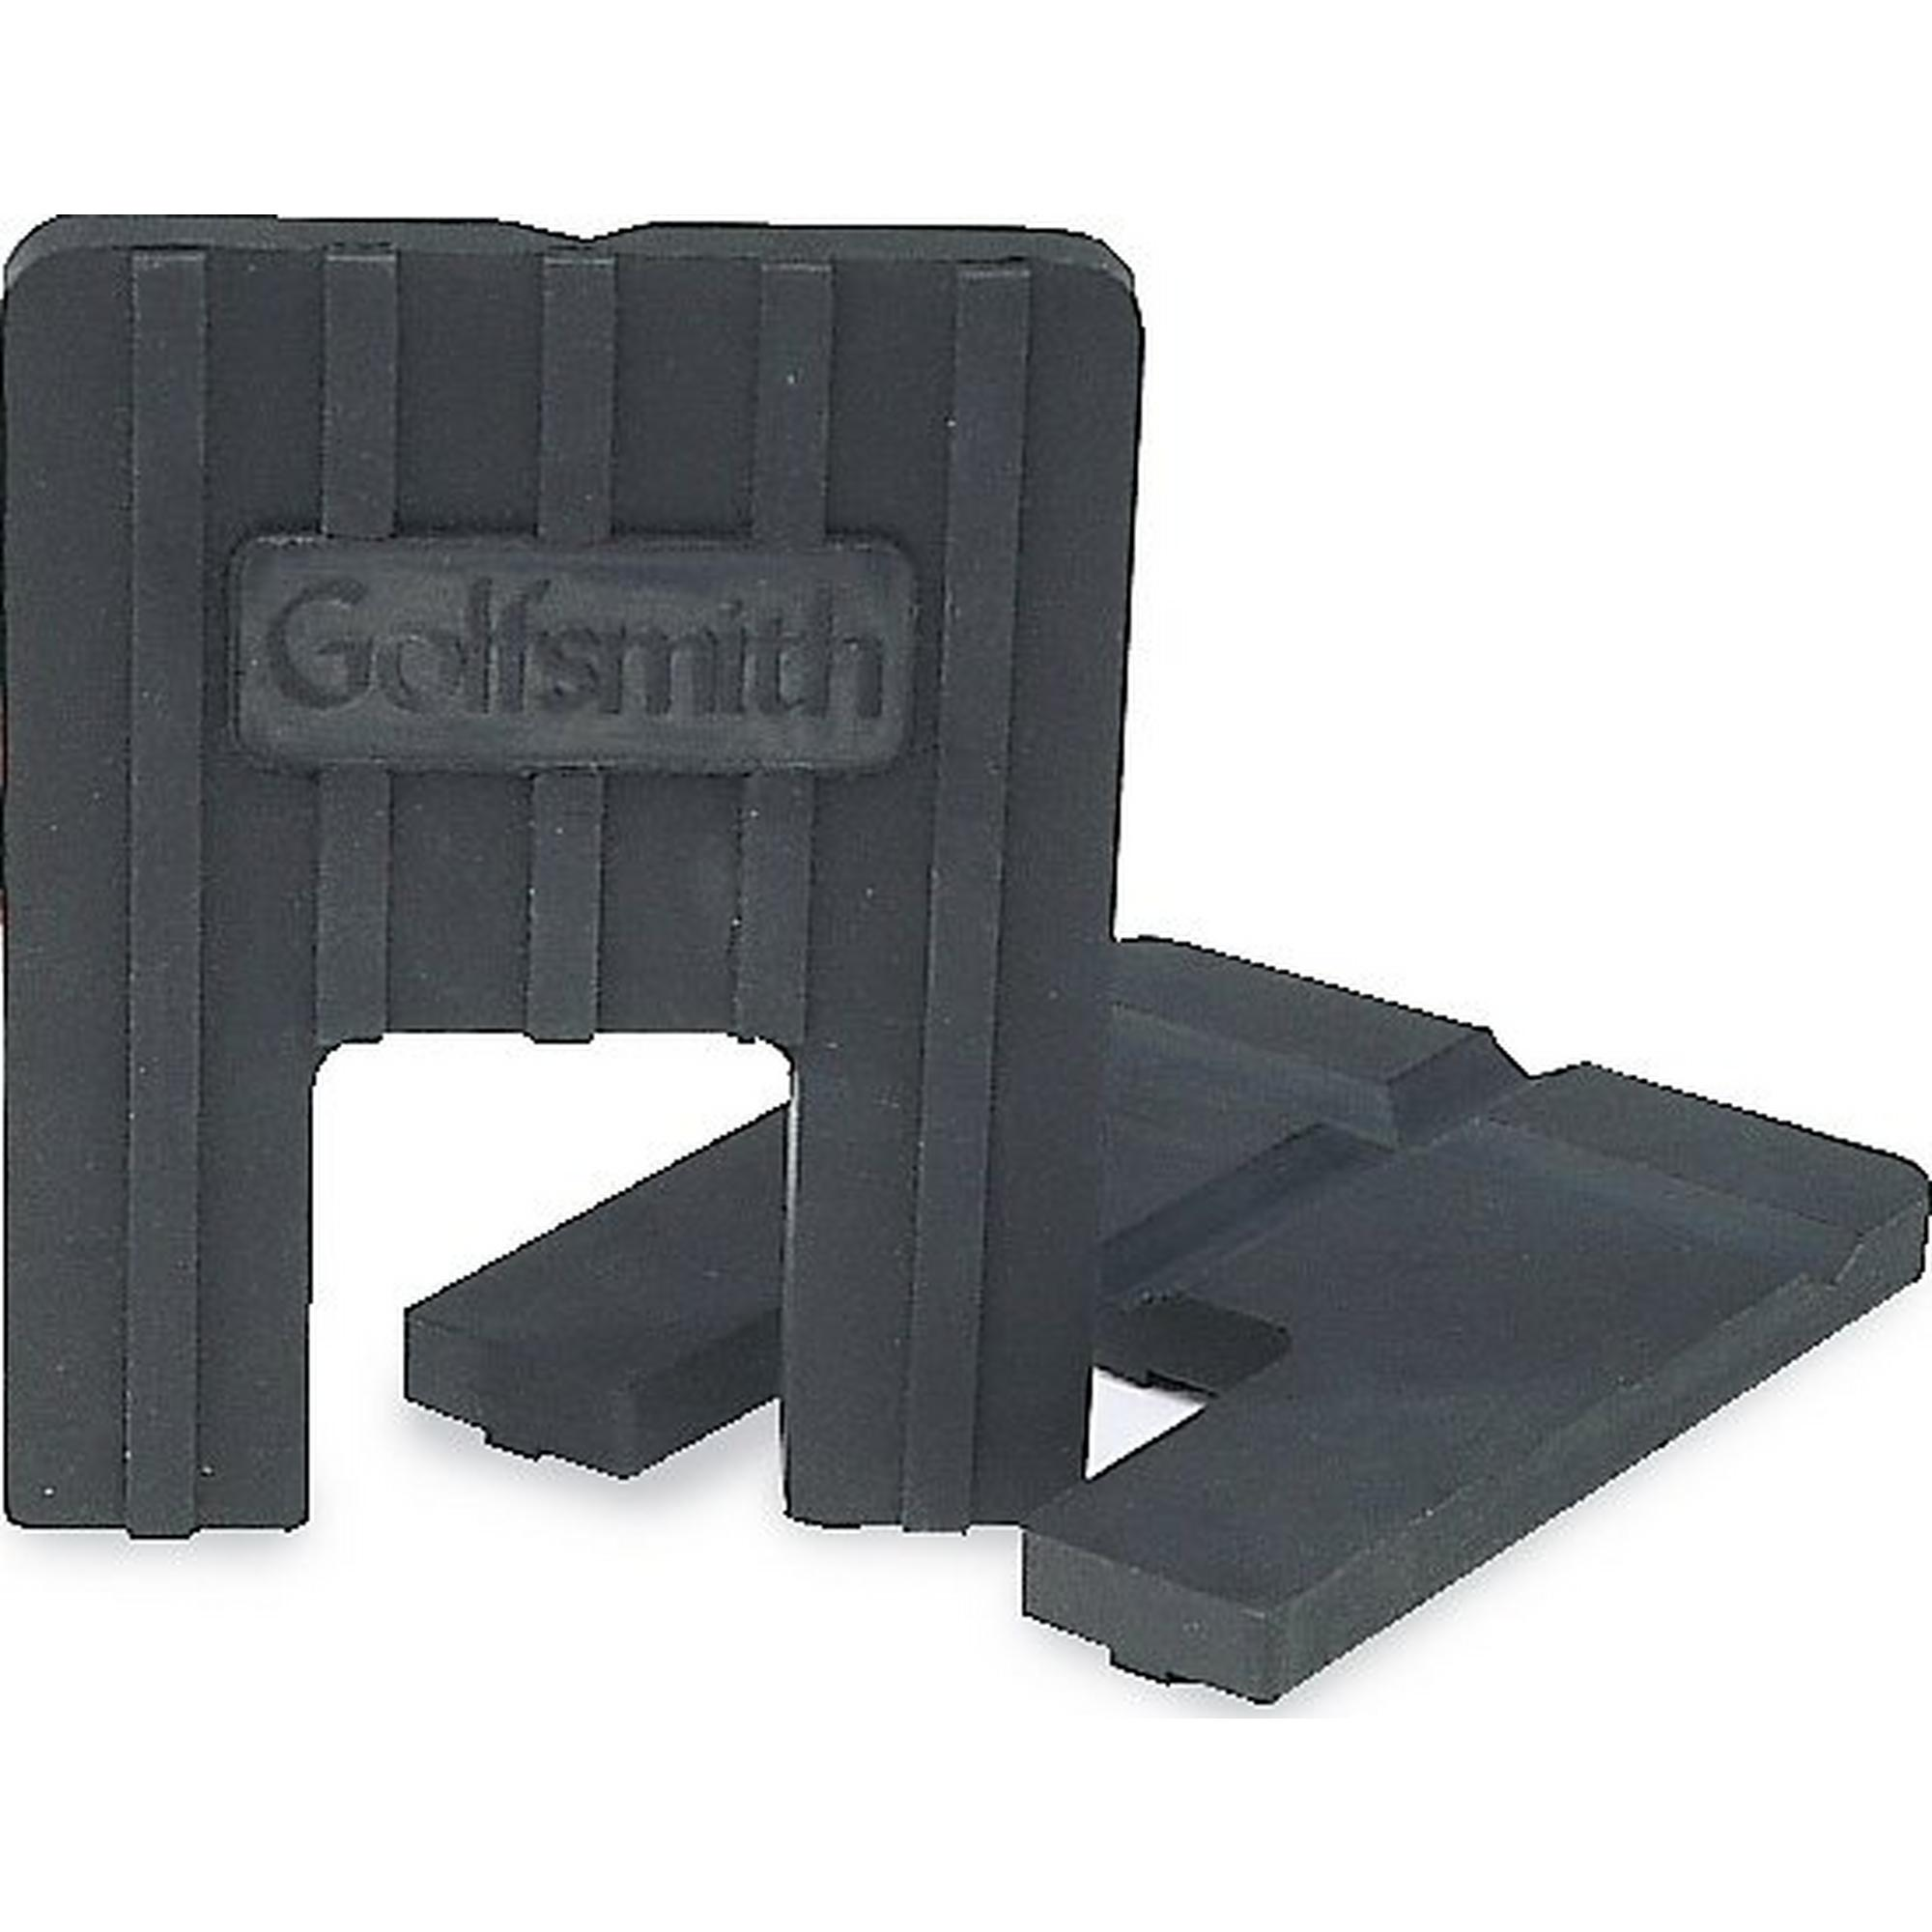 Rubber Vise Pads